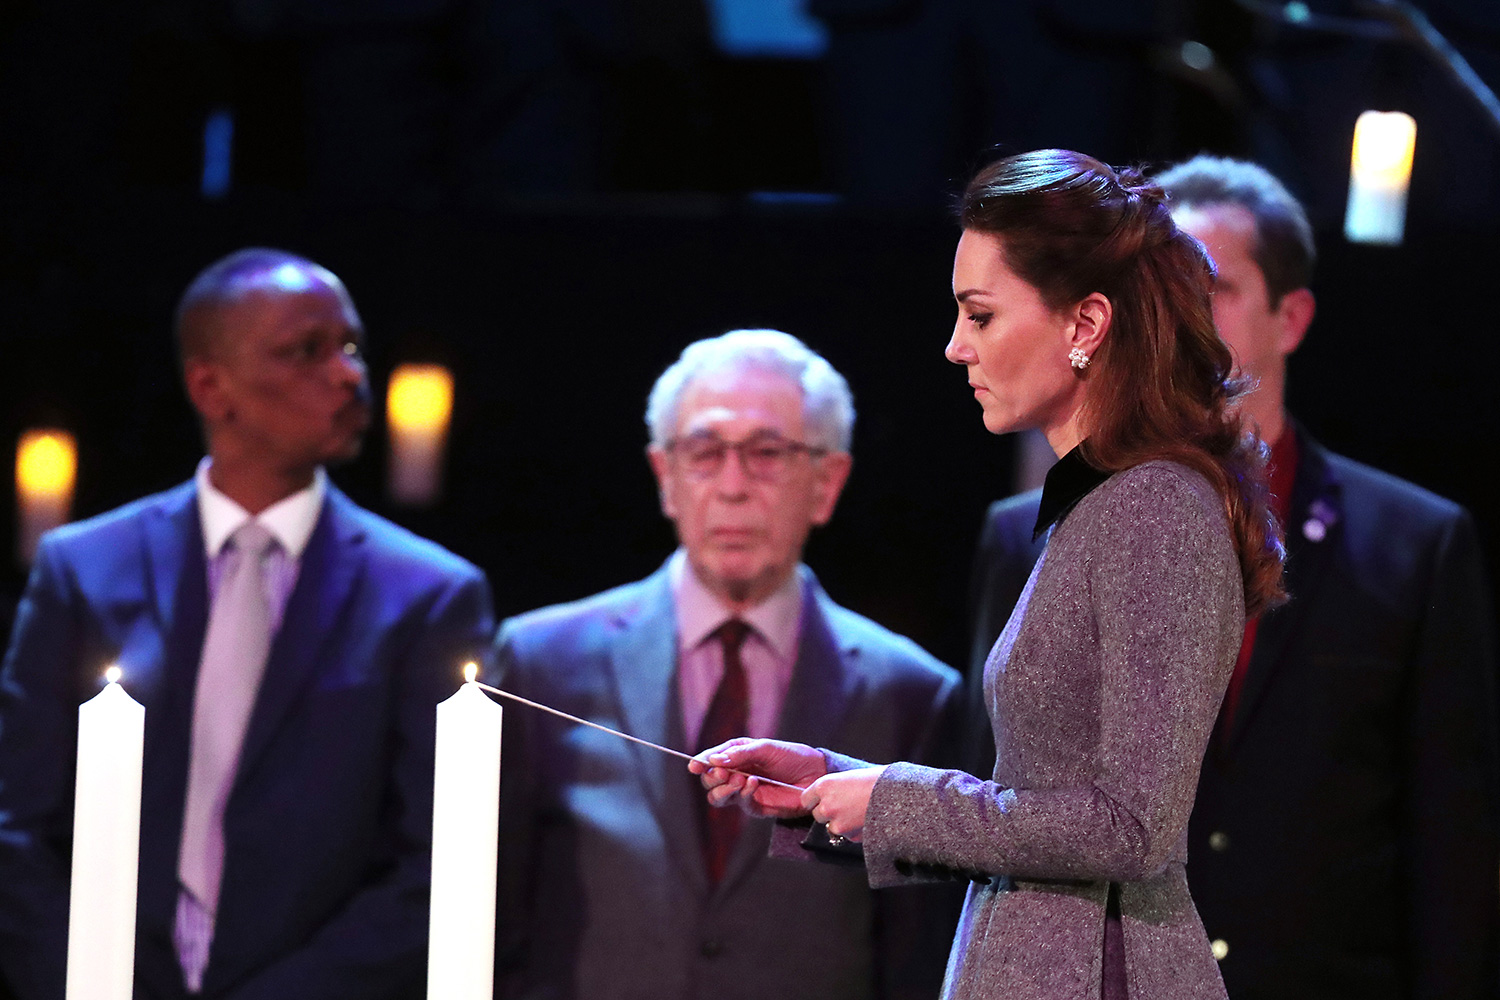 Catherine, Duchess of Cambridge lights a candle during the UK Holocaust Memorial Day Commemorative Ceremony in Westminster on January 27, 2020 in London